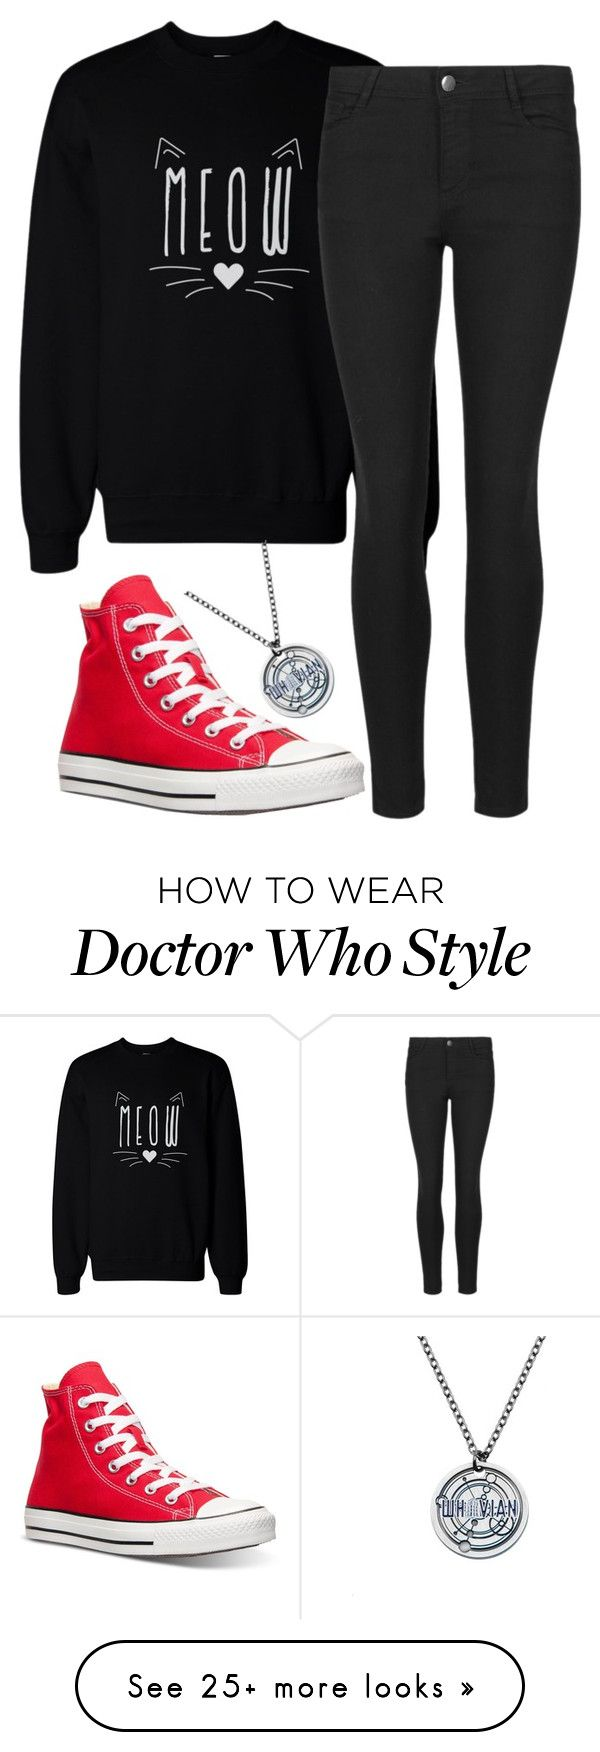 """Polyvore Tag"" by swallowed-by-the-universe on Polyvore featuring Indigo Collection, Converse, women's clothing, women's fashion, women, female, woman, misses, juniors and Tag"